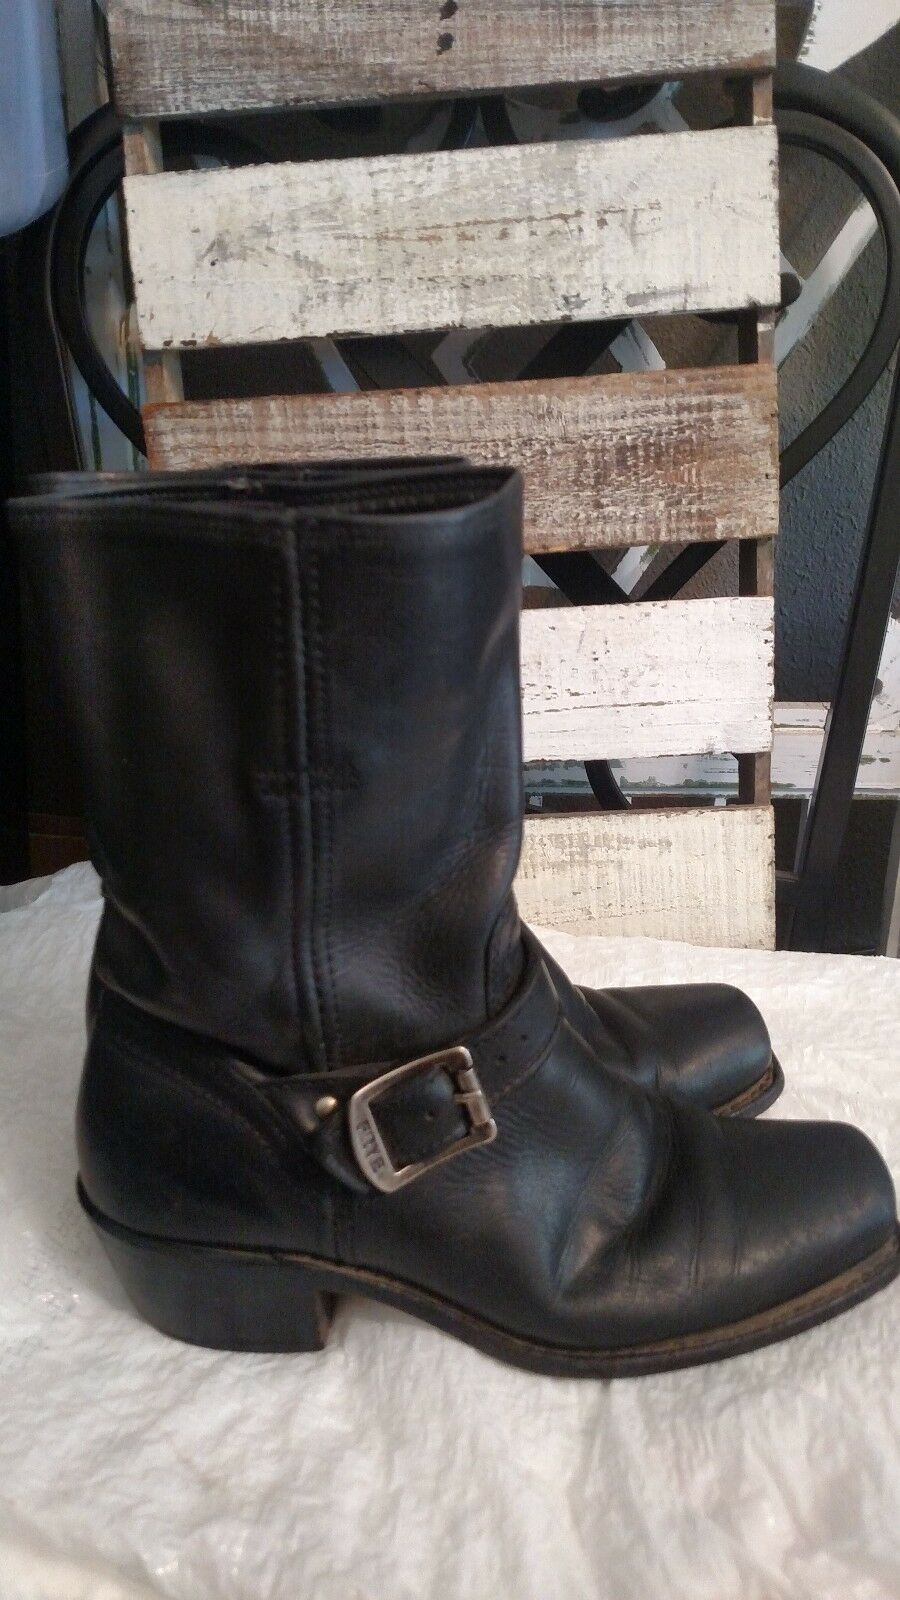 Frye Cavalry Strap 8L motorcycle Boots black Size 7.0M motorcycle 8L 2ac08d